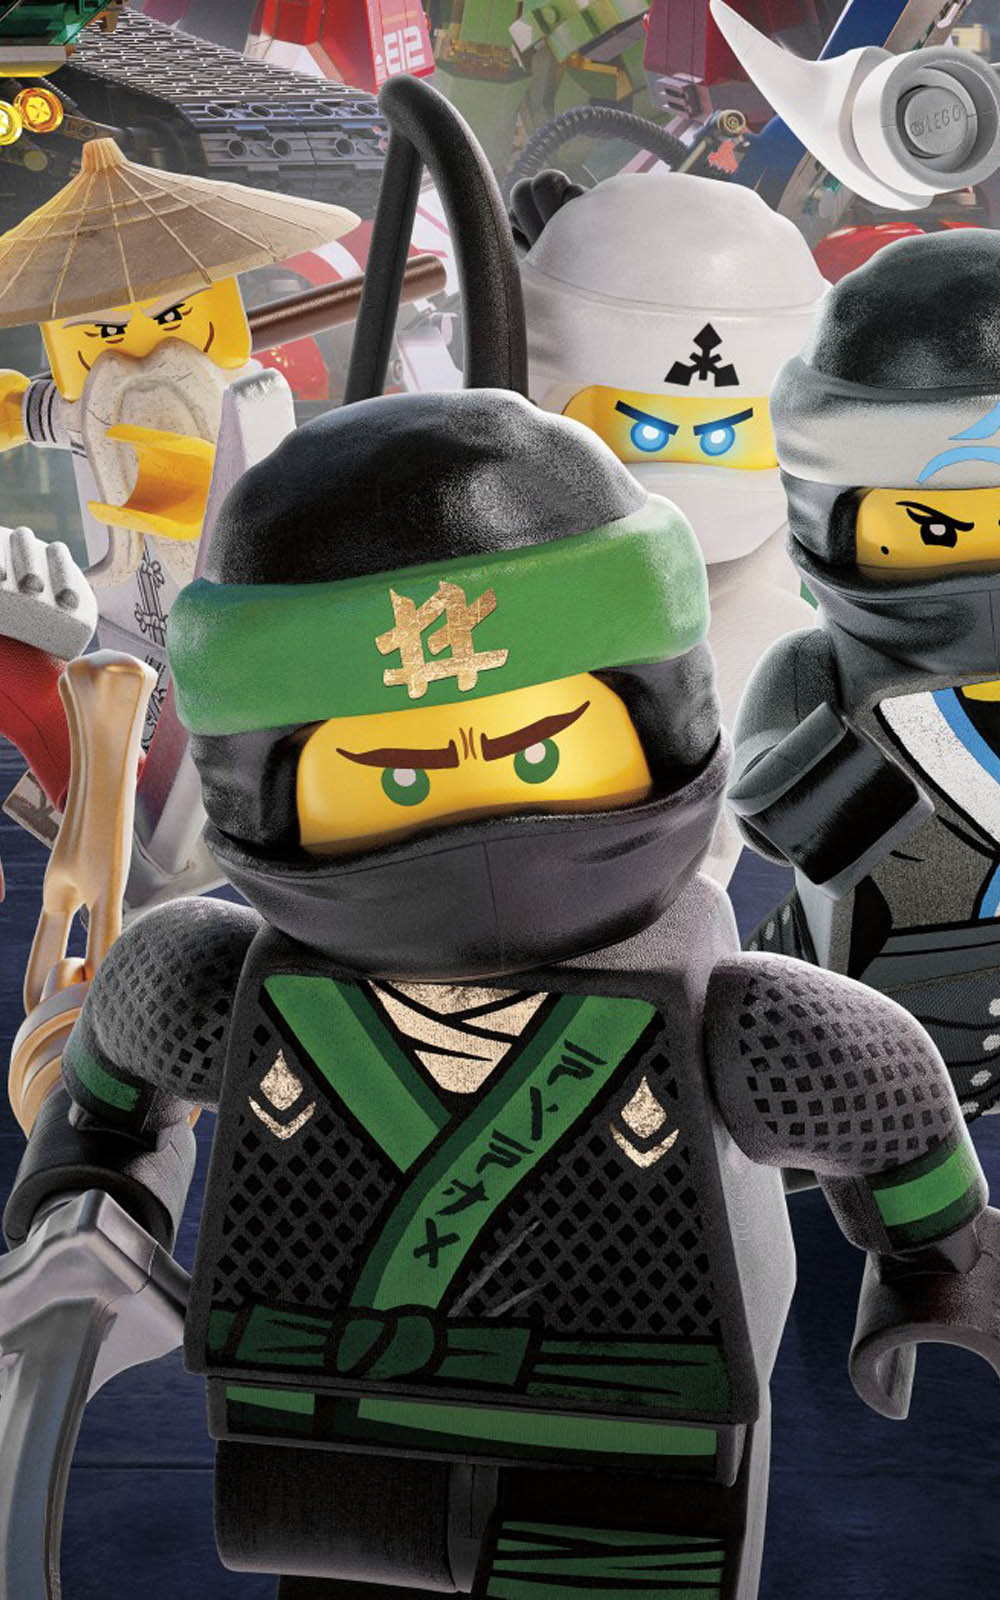 Download ninja warriors in the lego ninjago free pure 4k - Ninjago phone wallpaper ...